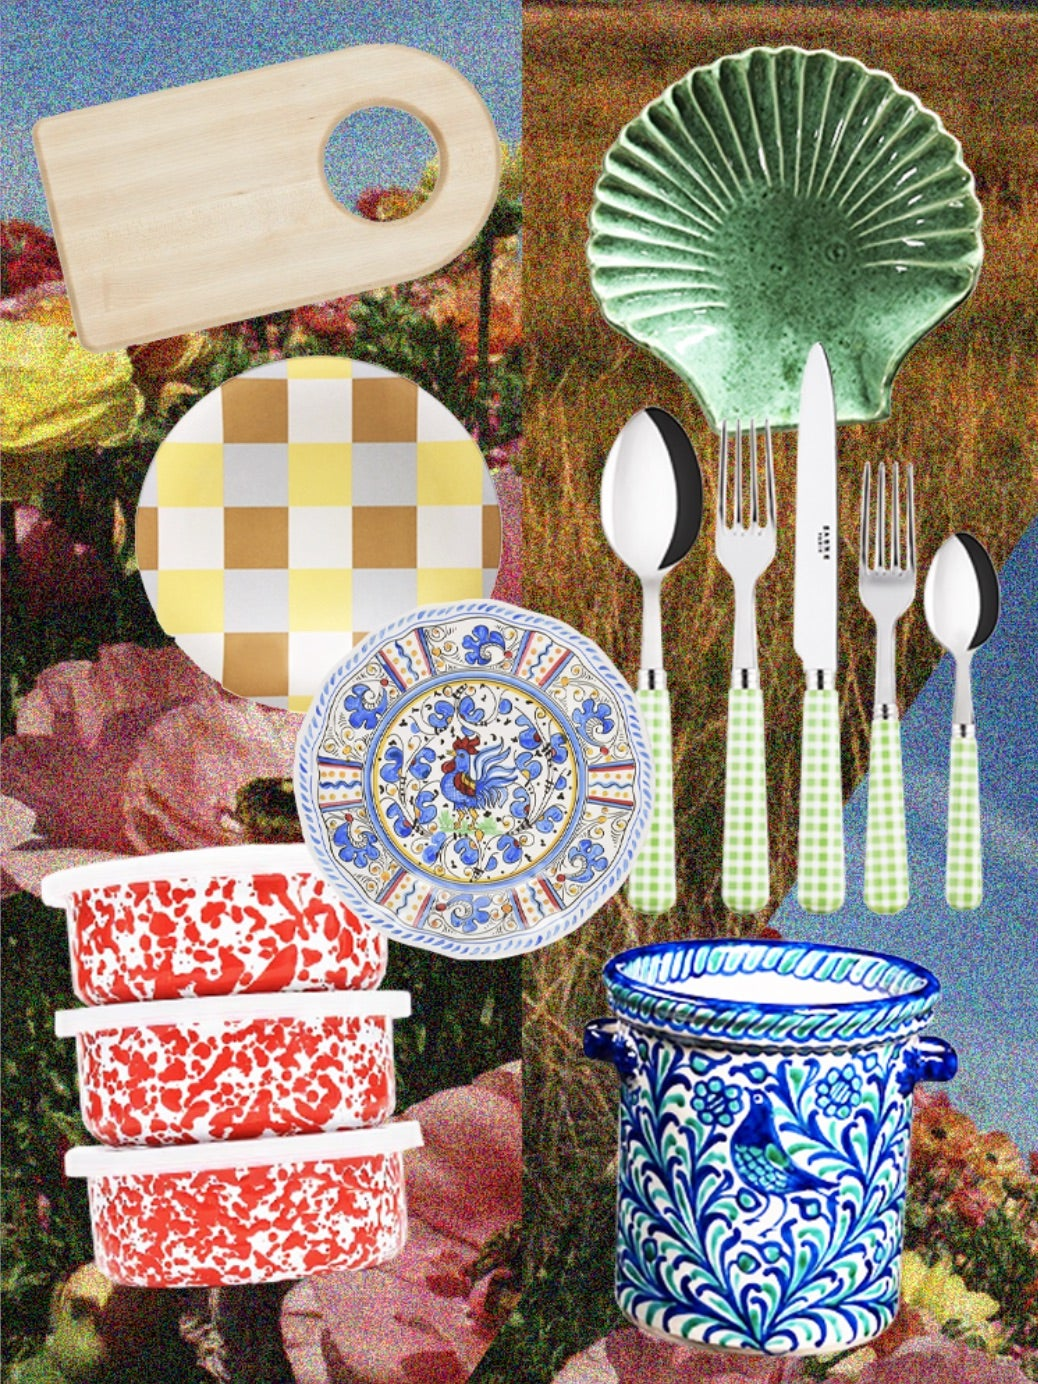 The Perfect Backyard Picnic Requires Splatter-Paint Tupperware